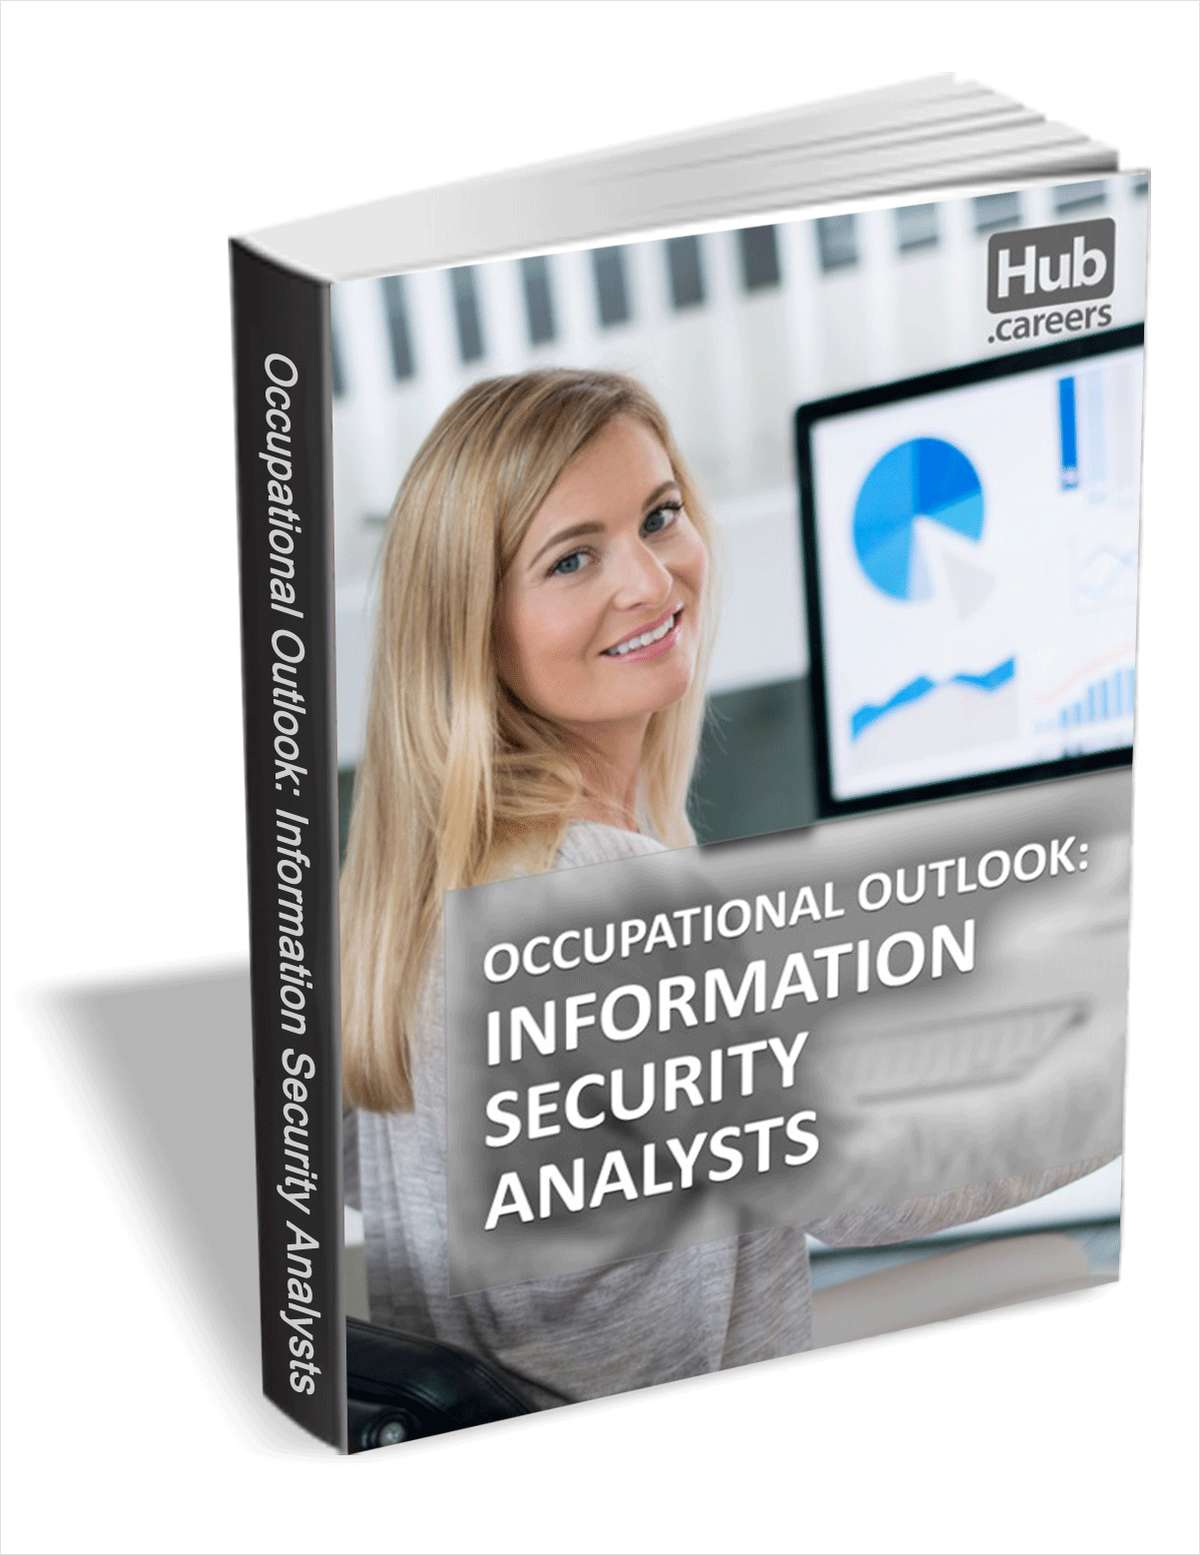 Information Security Analysts - Occupational Outlook